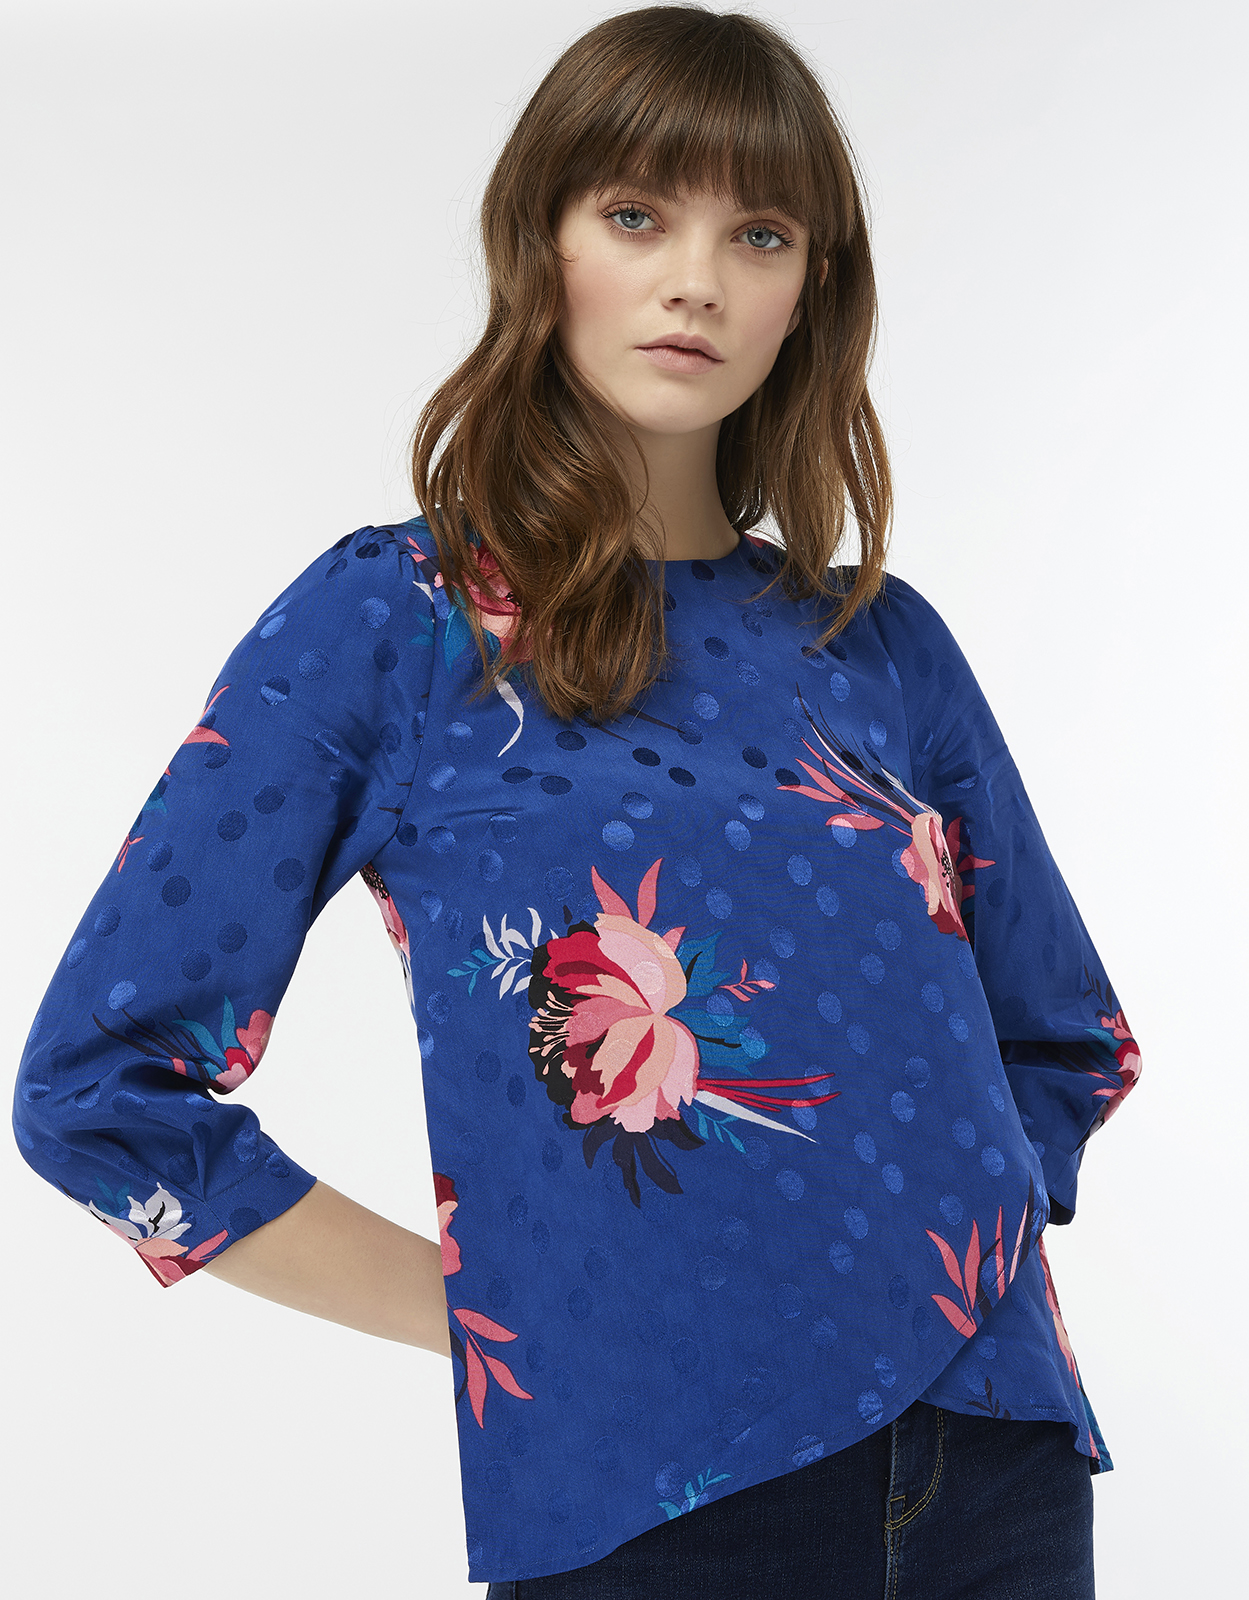 Monsoon Janice Floral Print Top